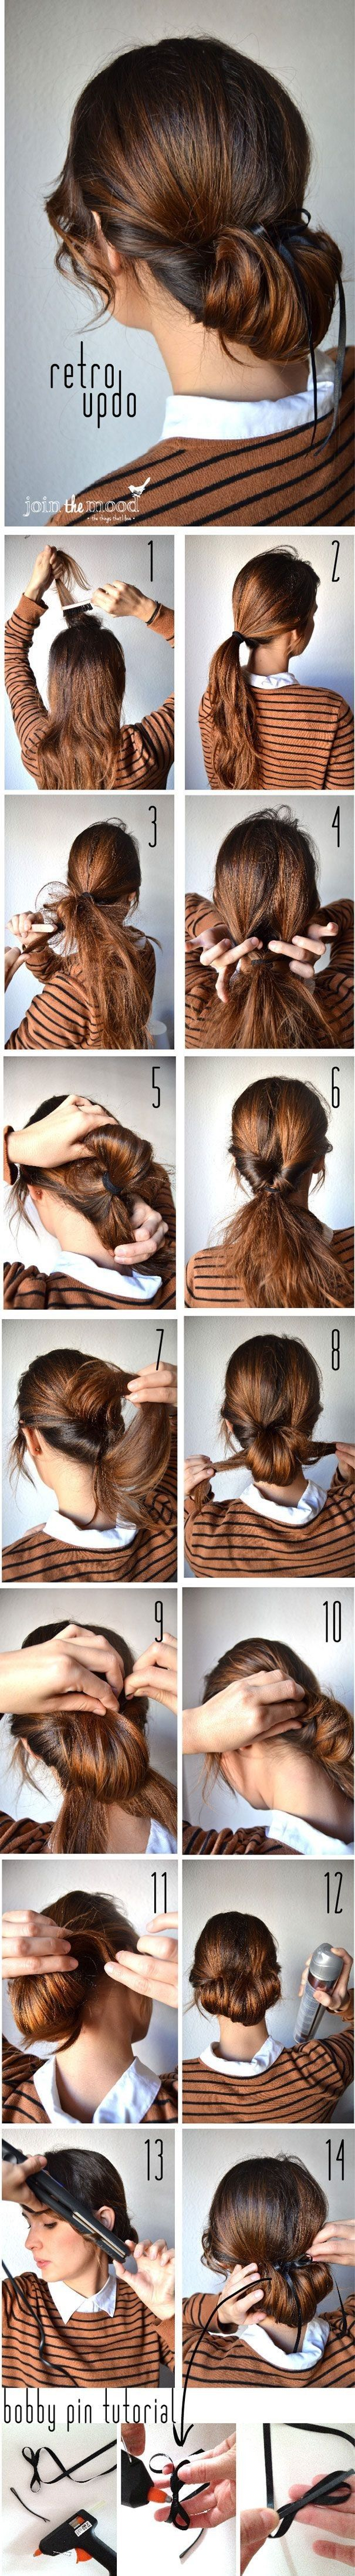 Retro Updos Tutorial: Step by Step Hairstyles for Long Hair - this bun looks so much easier that the others I've seen